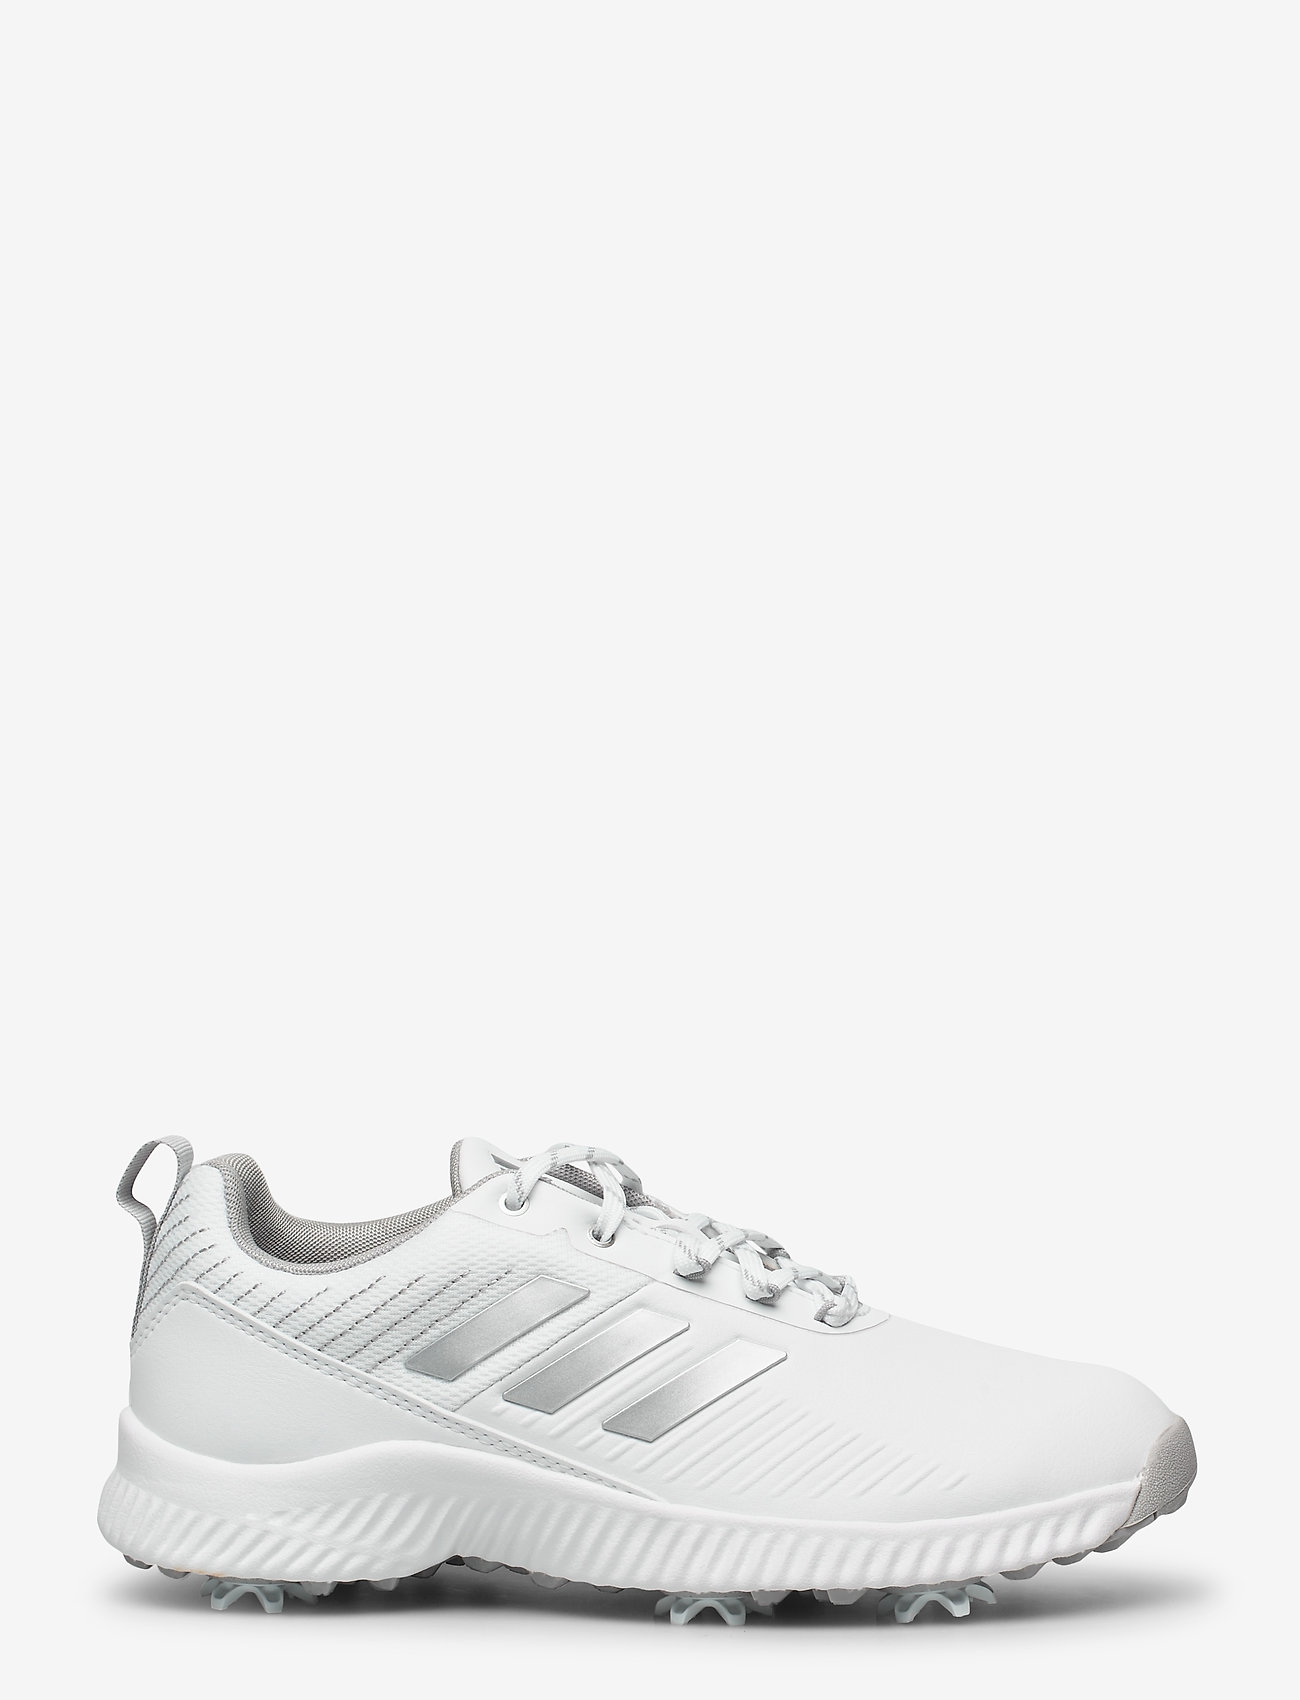 adidas Golf - W RESPONSE BOUNCE 2 - golf shoes - ftwwht/silvmt/gretwo - 1